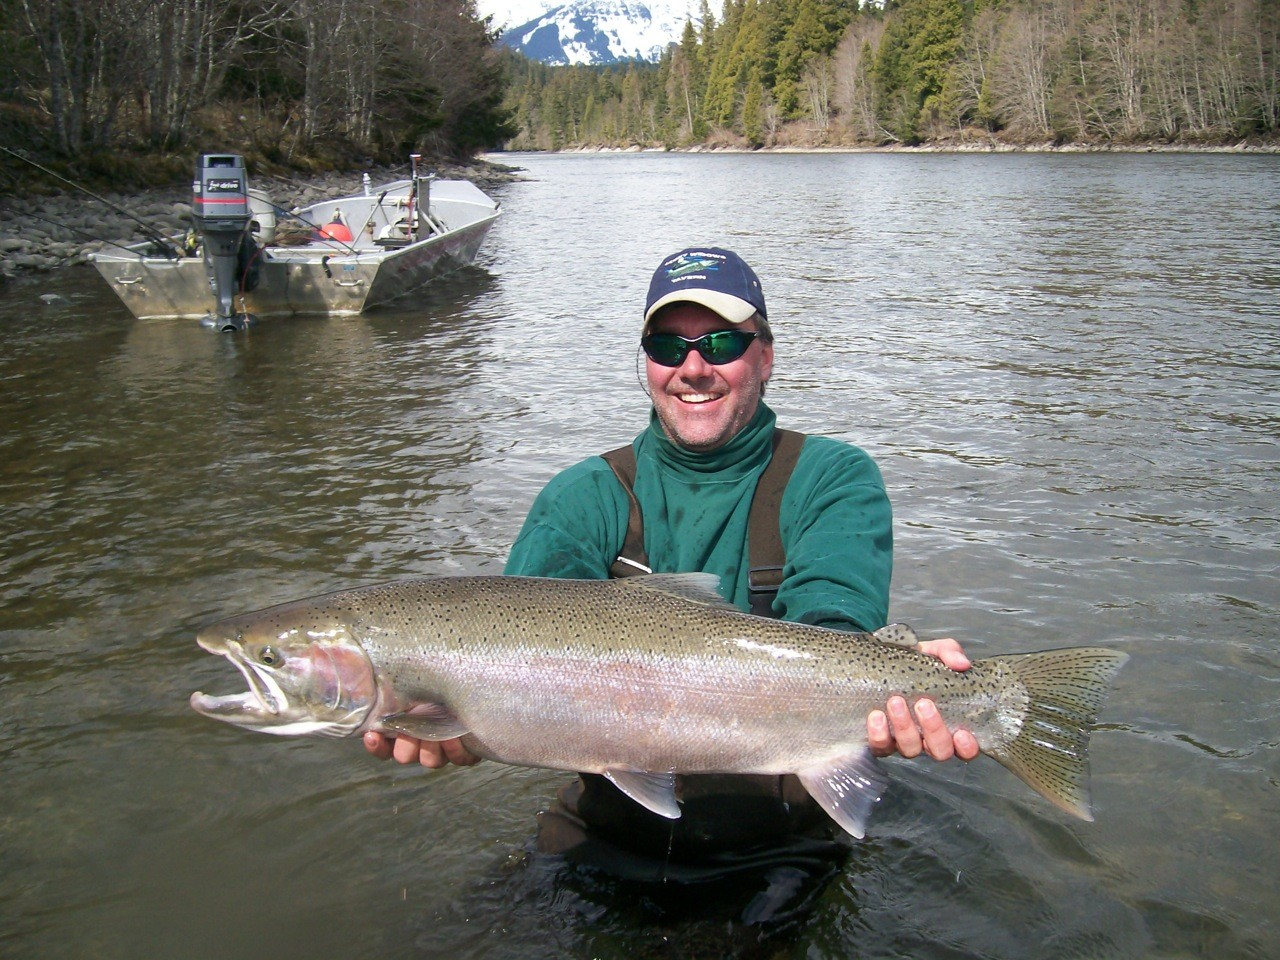 Skeena wilderness guides fishabout fishing outfitters for Steelhead fishing tips